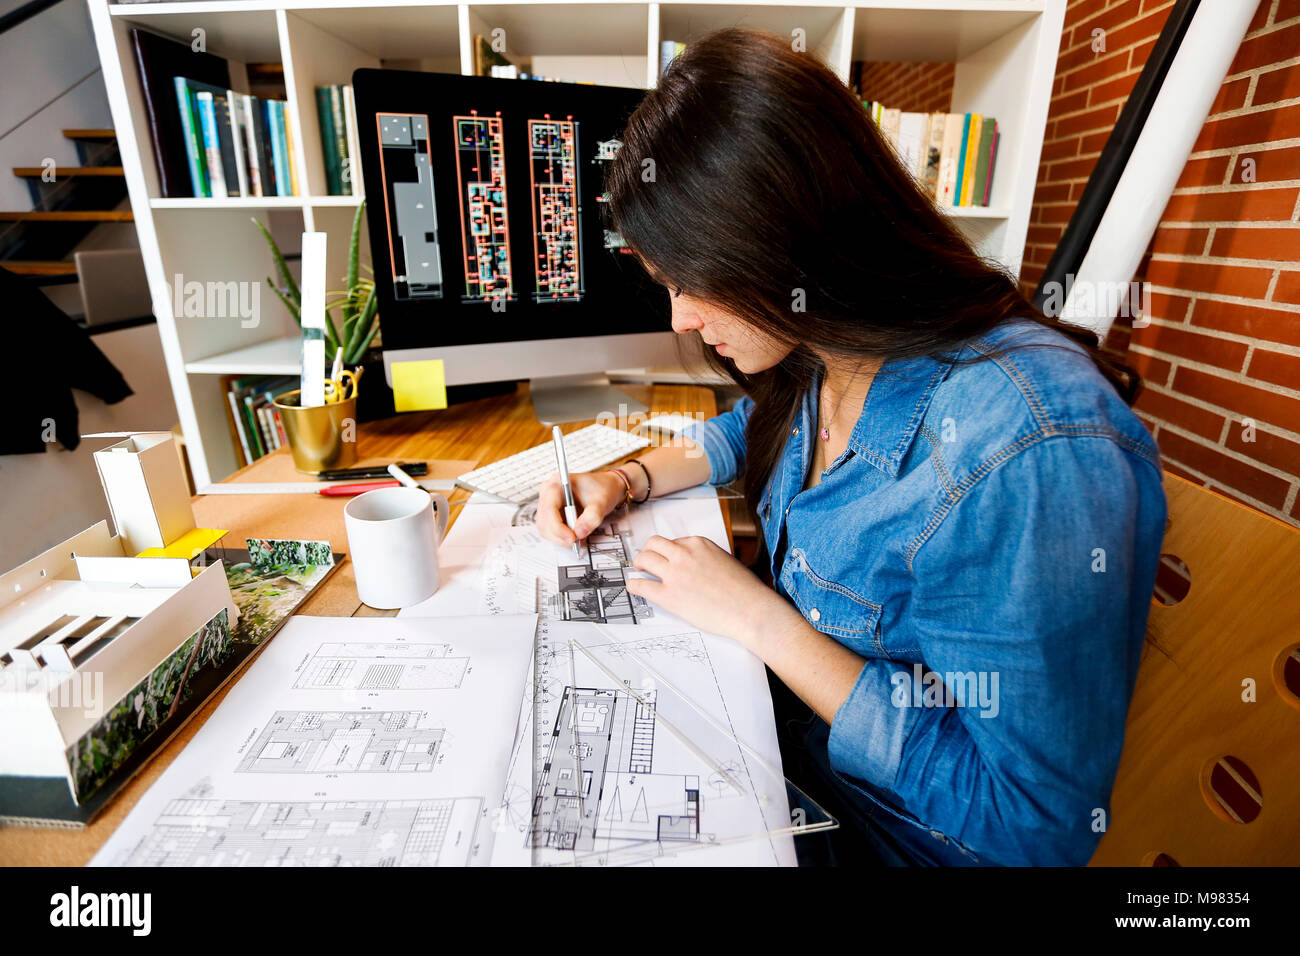 Young woman working in architecture office, drawing blueprints - Stock Image